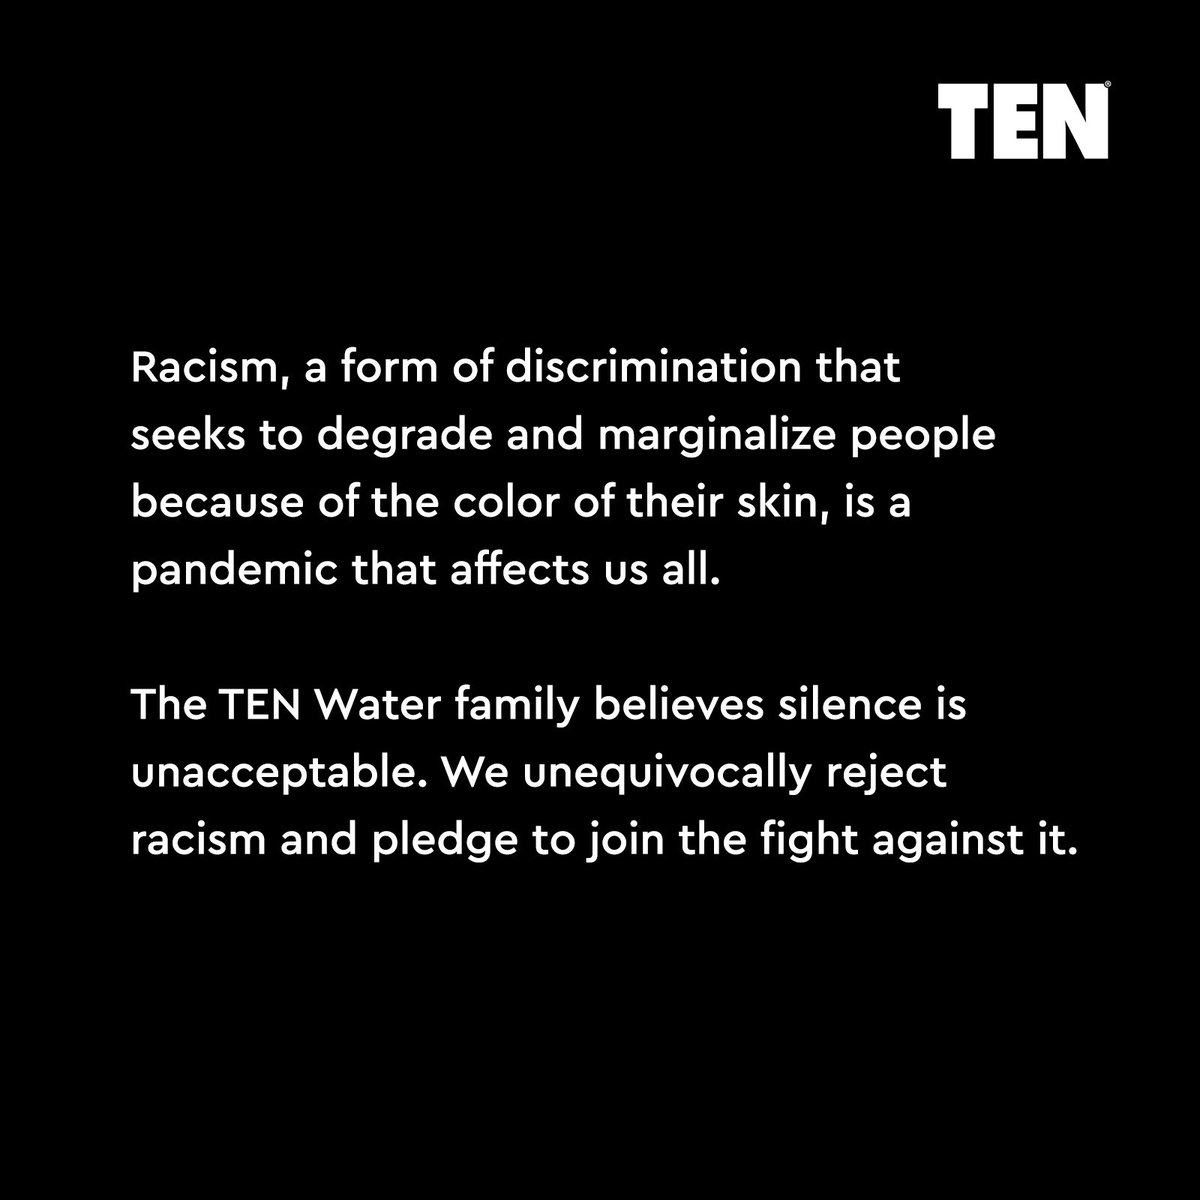 We want to encourage our followers to use their voice and take time to educate those around them. Never stop using your voice to speak out against society's injustices. Spread compassion and terminate racism beyond social media in your everyday practice... https://t.co/aLI4wgxcSV